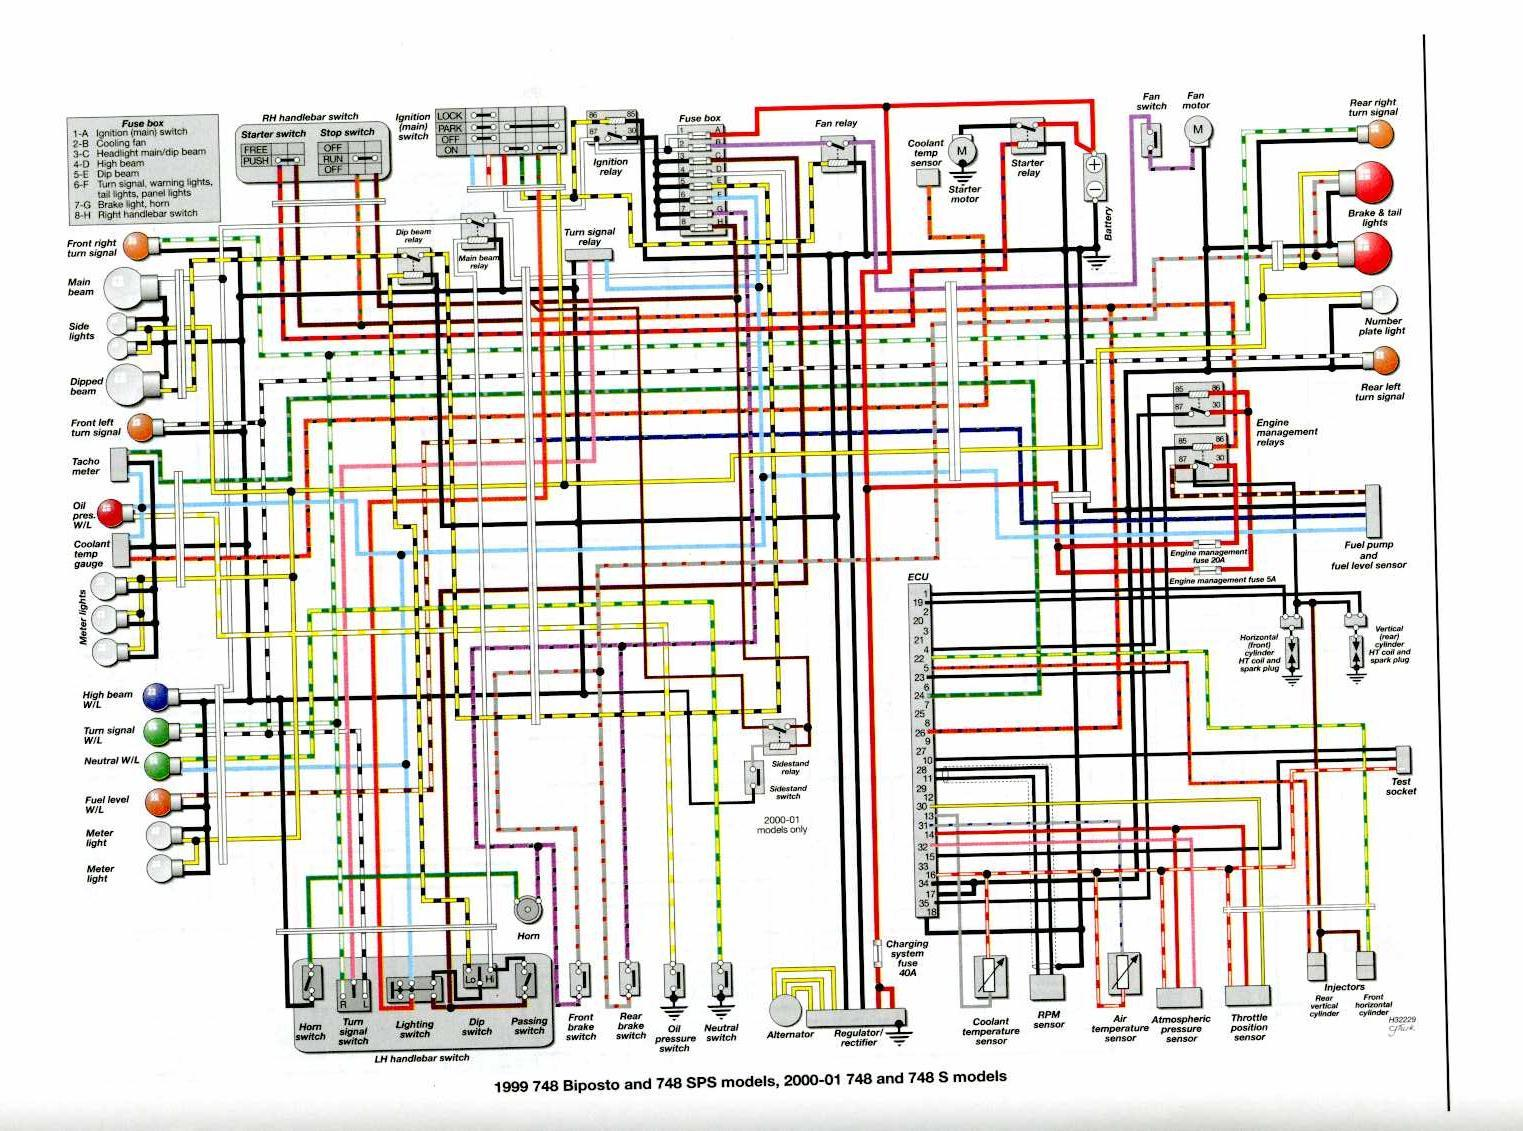 727138d1467671052 748 916 rpm cable 748 wiring 748 916 rpm cable ducati ms the ultimate ducati forum translogic dash wiring diagram at panicattacktreatment.co